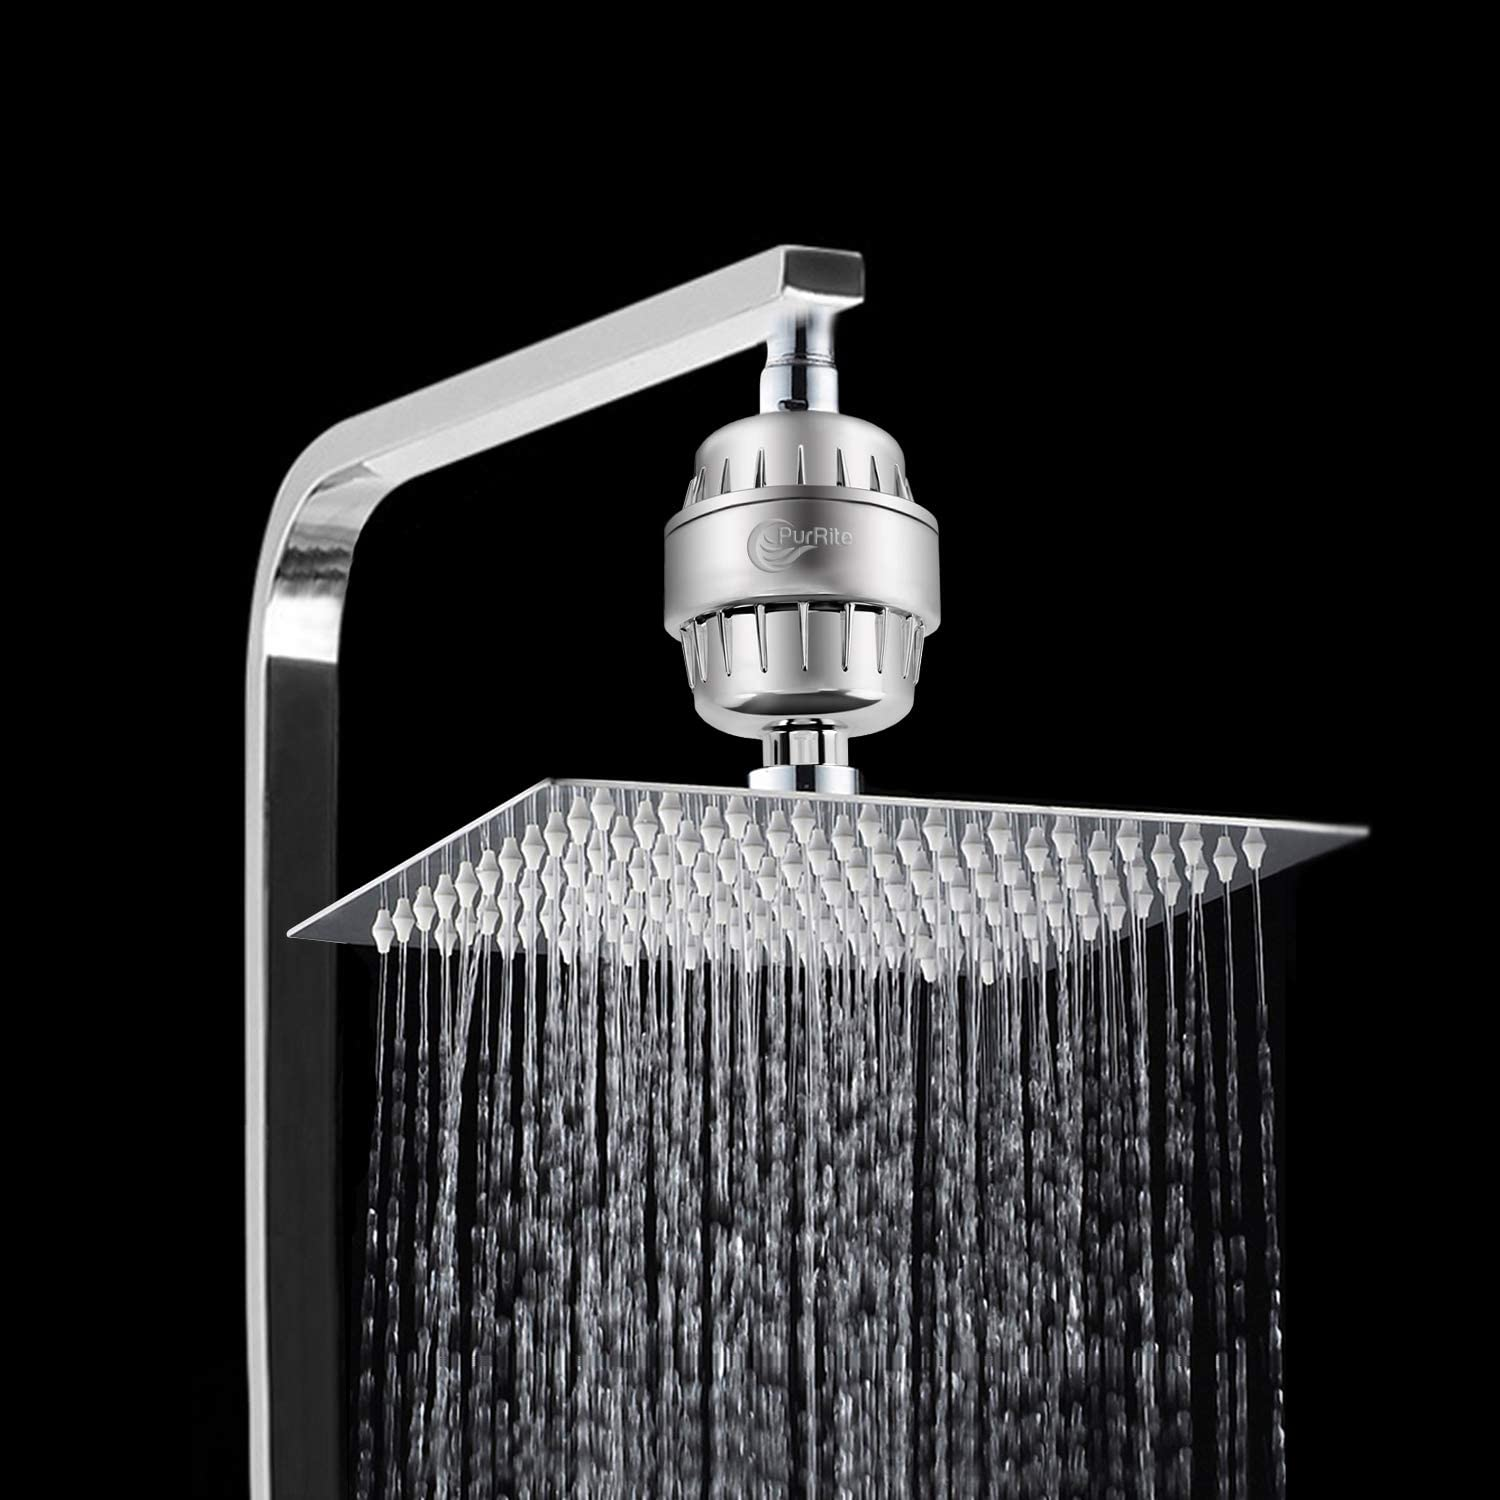 PurRite Shower Filter Water Softener in real life